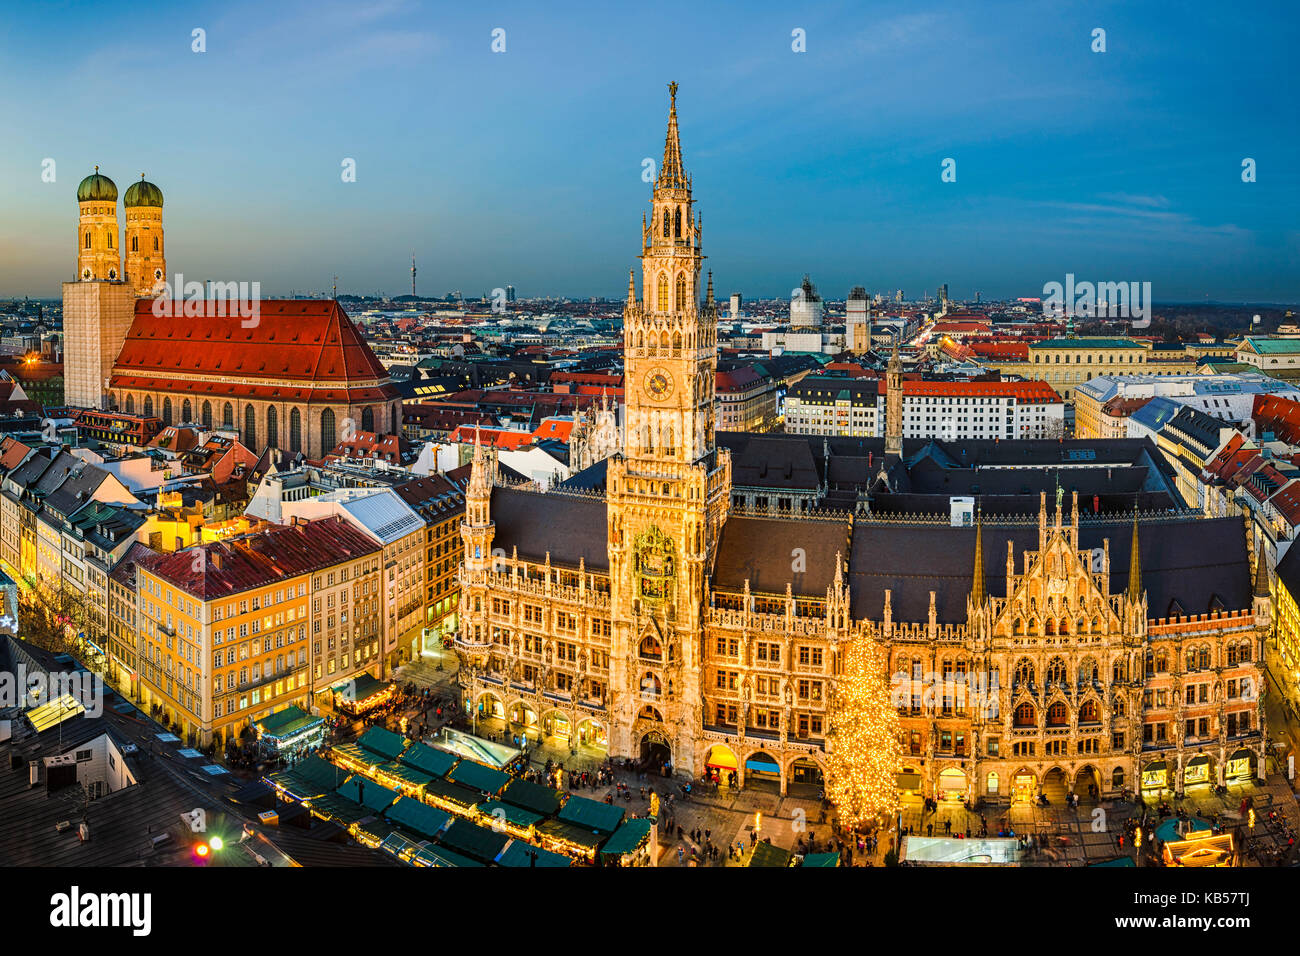 Night view of Marienplatz with the Christmas market in Munich, Germany Stock Photo